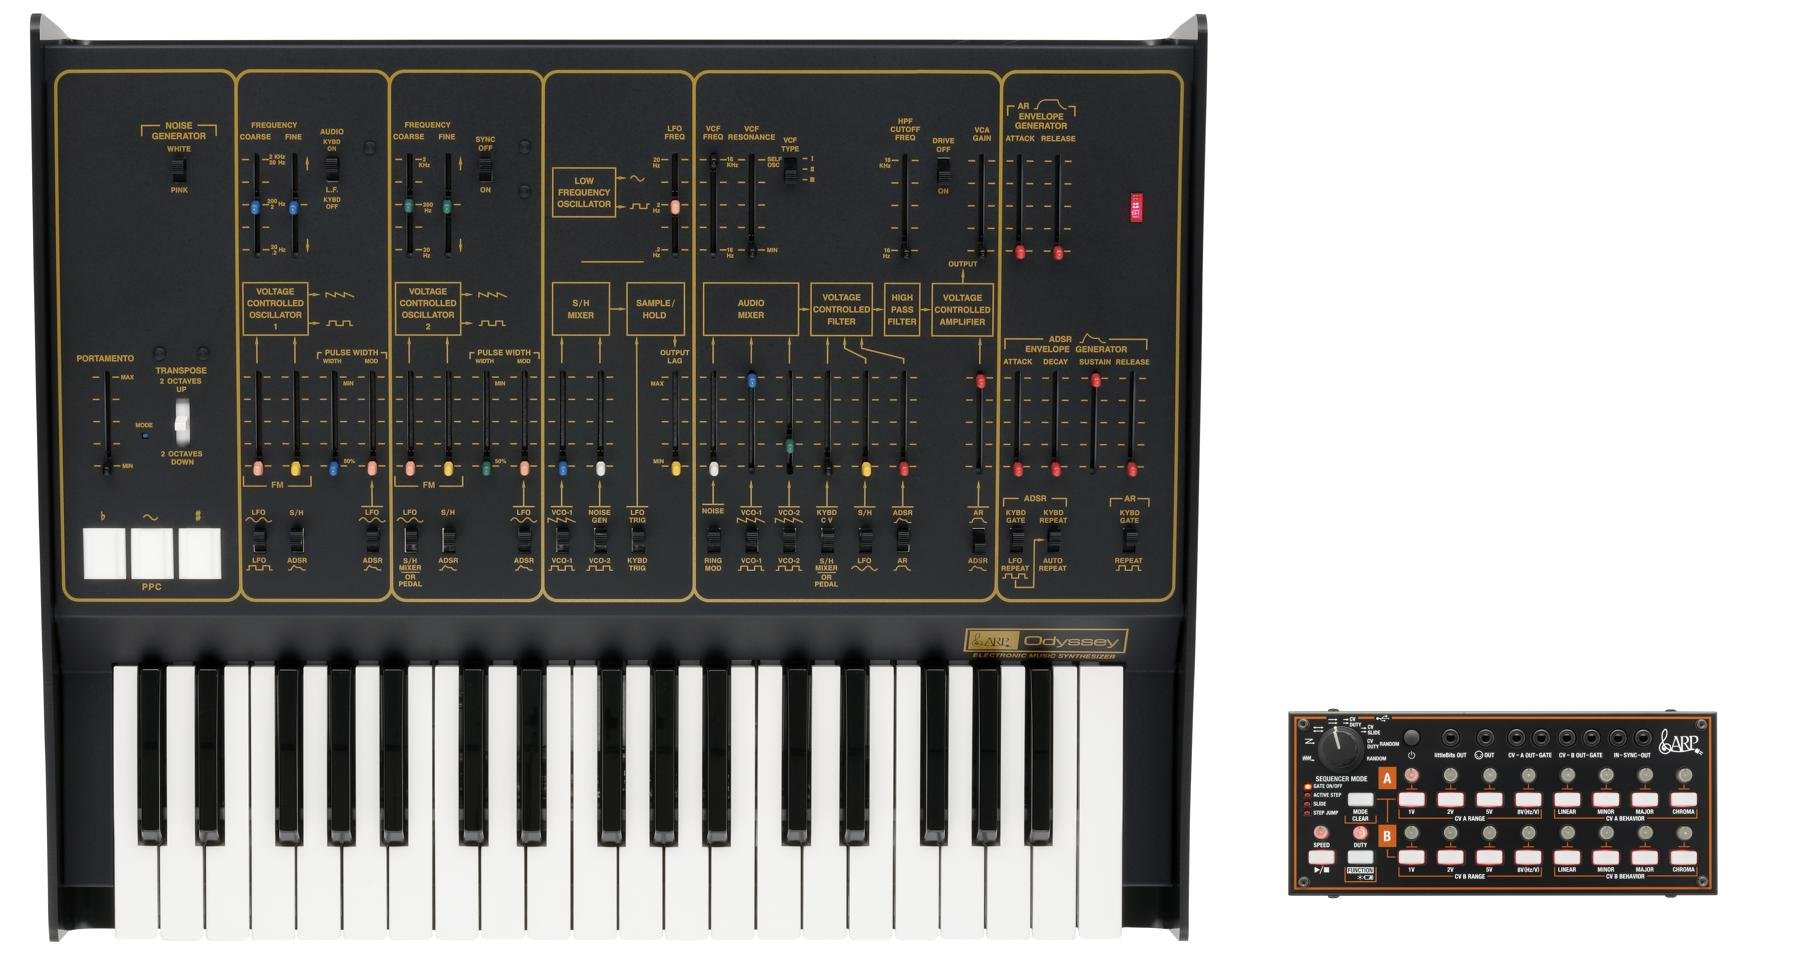 Arp Odyssey Fsq Analog Synthesizer With Sq1 Sequencer Rev2 Electromusiccom View Topic Please Explain Me This Ad Envelop Image 1